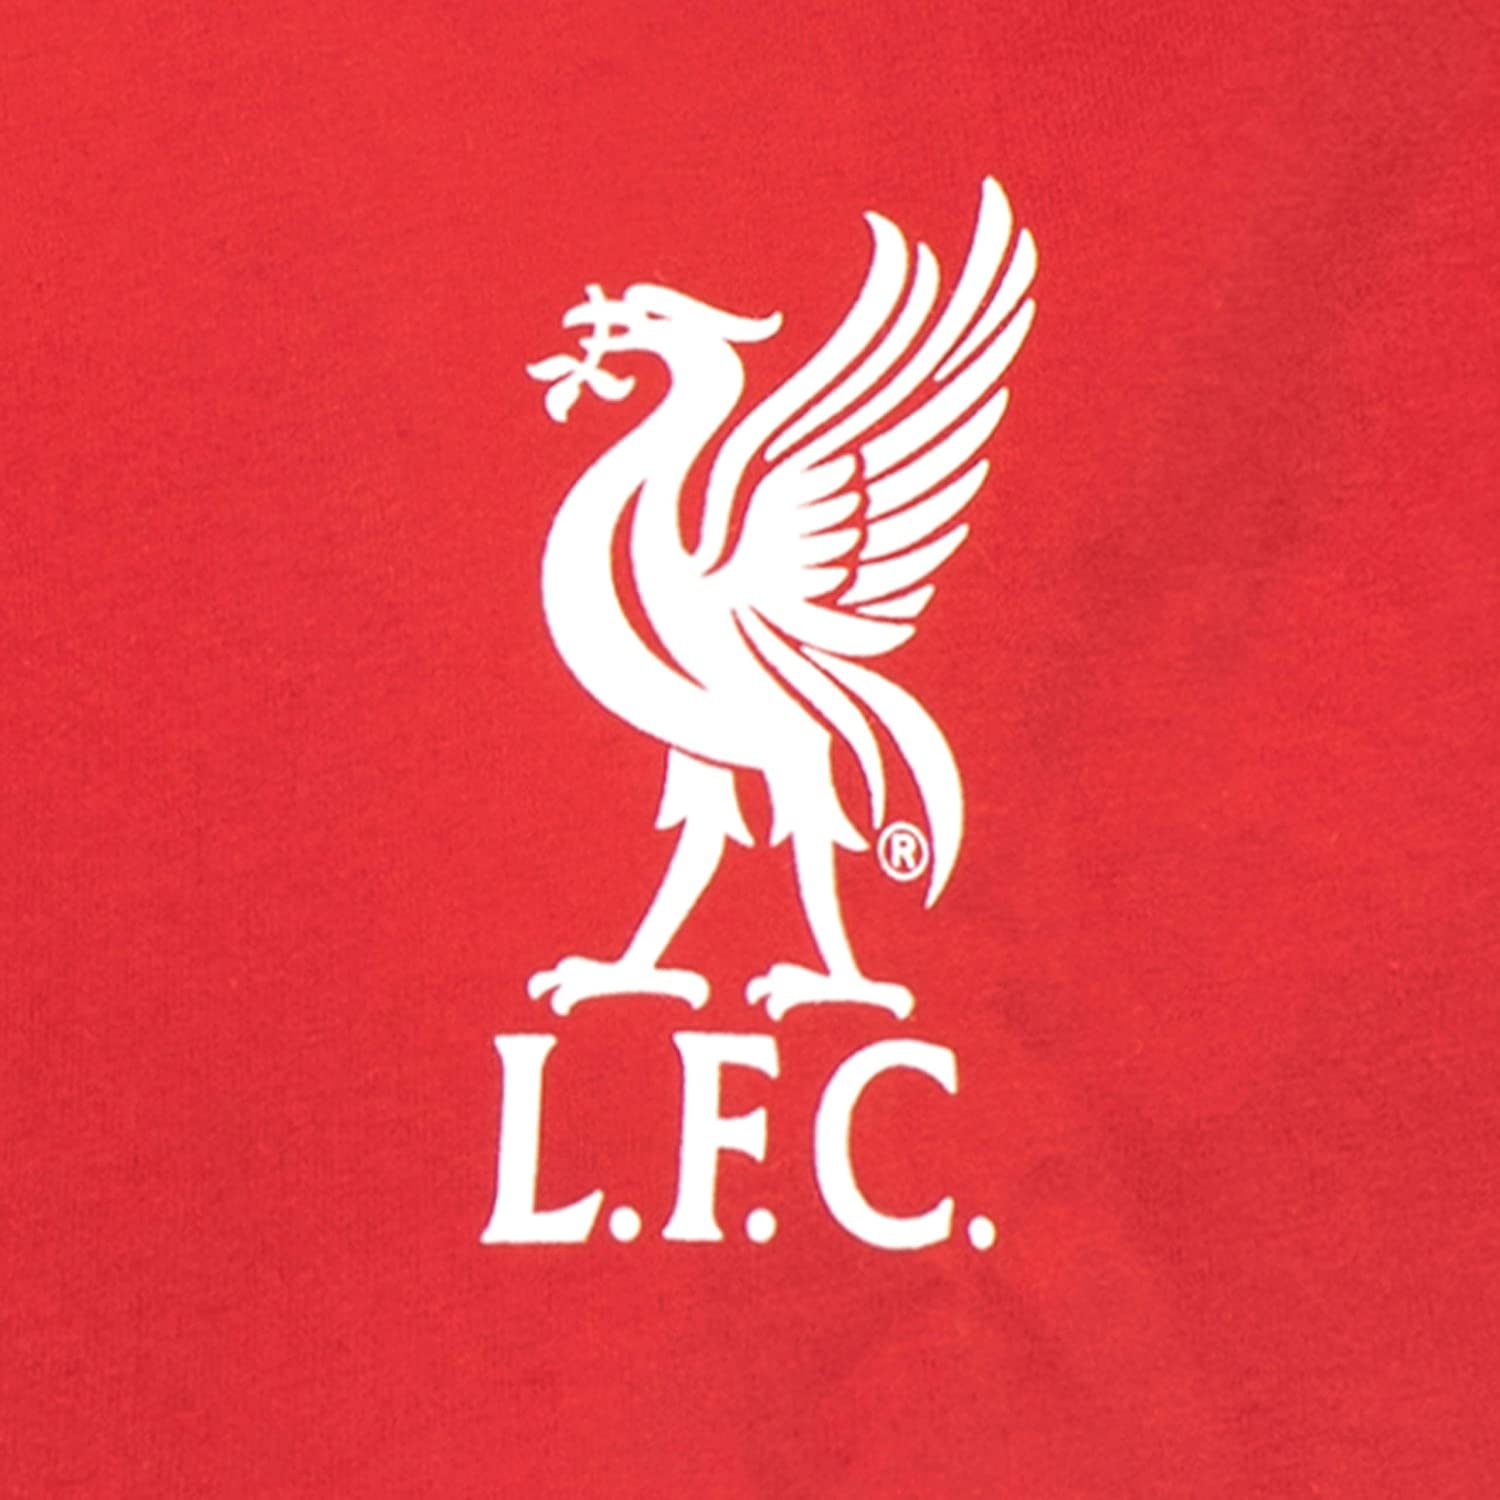 Pigiama per Uomo Liverpool Football Club Liverpool F.C